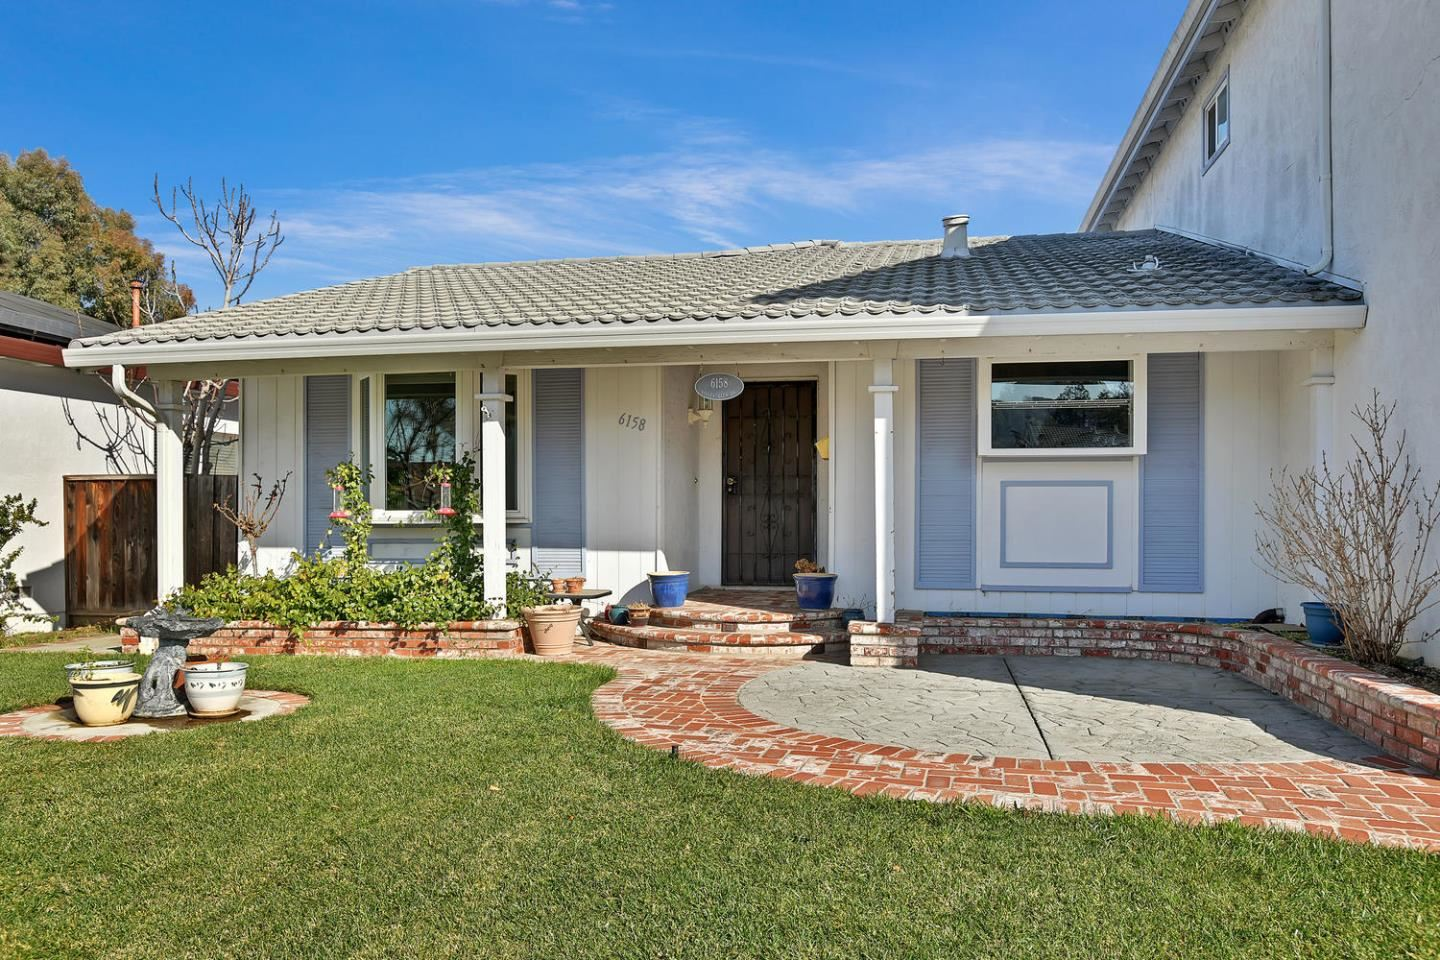 Photo for 6158 Valley Glen DR, SAN JOSE, CA 95123 (MLS # ML81782728)